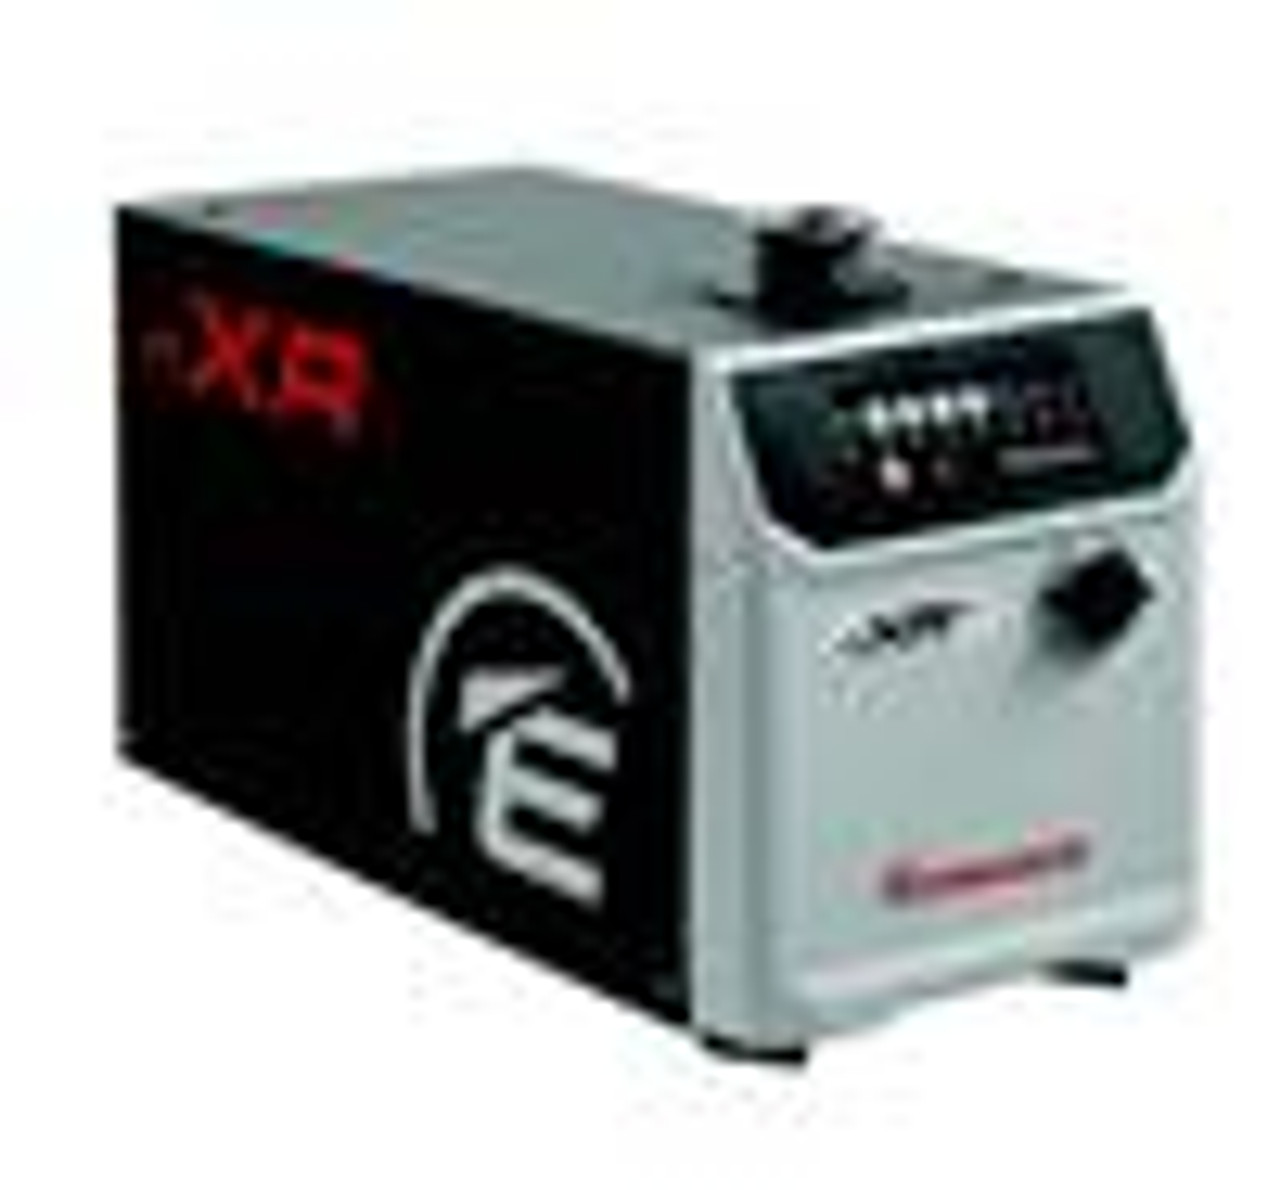 nXR60i NW40 Multi Stage Roots Dry Pump 100-127/200-240 V, 50/60 Hz